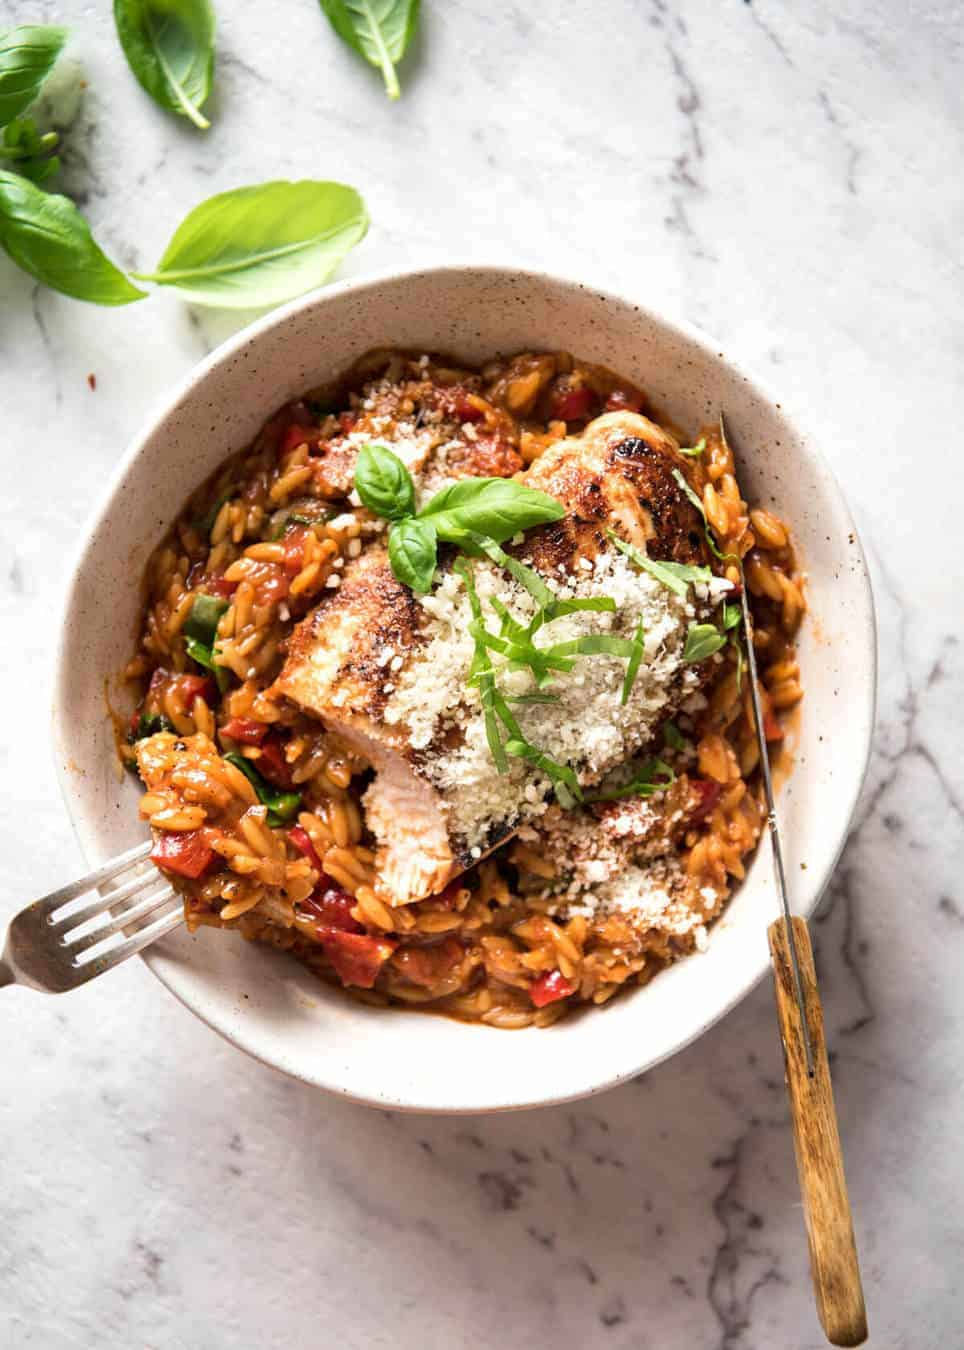 One pot italian chicken orzo risoni pasta recipetin eats risoni pasta recipe with chicken italian chicken with a tomato basil risoni pasta recipe forumfinder